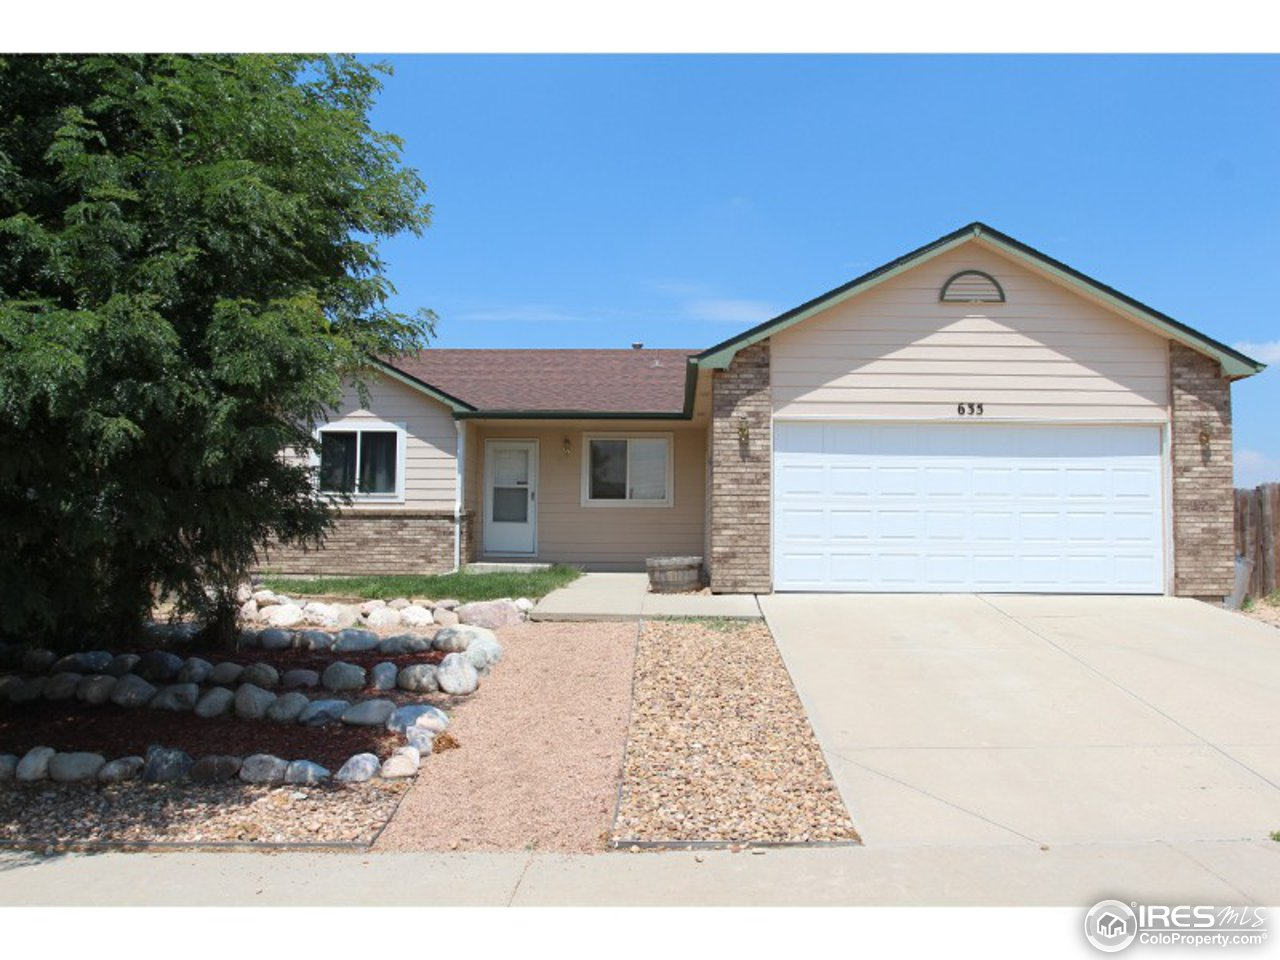 635 E 4th St Rd Loveland Home Listings - Team Cook Real Estate